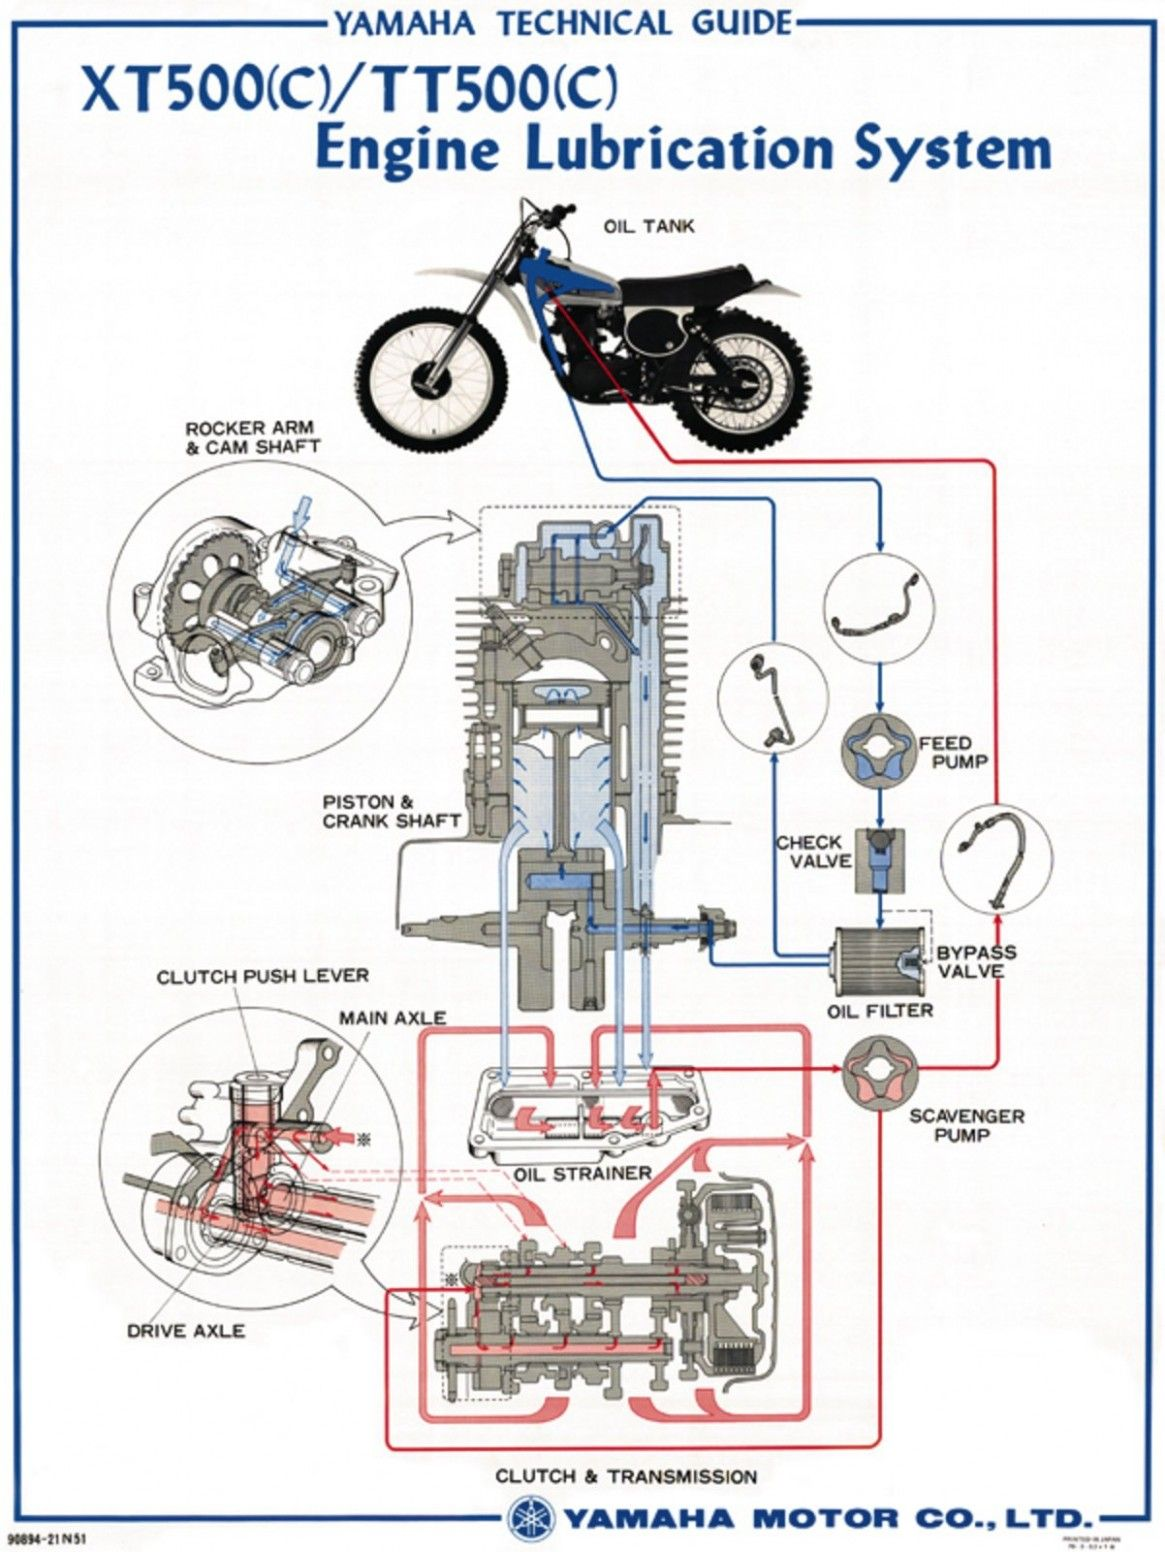 Engine Diagram Poster Yamaha Engine Diagram Poster Yamaha